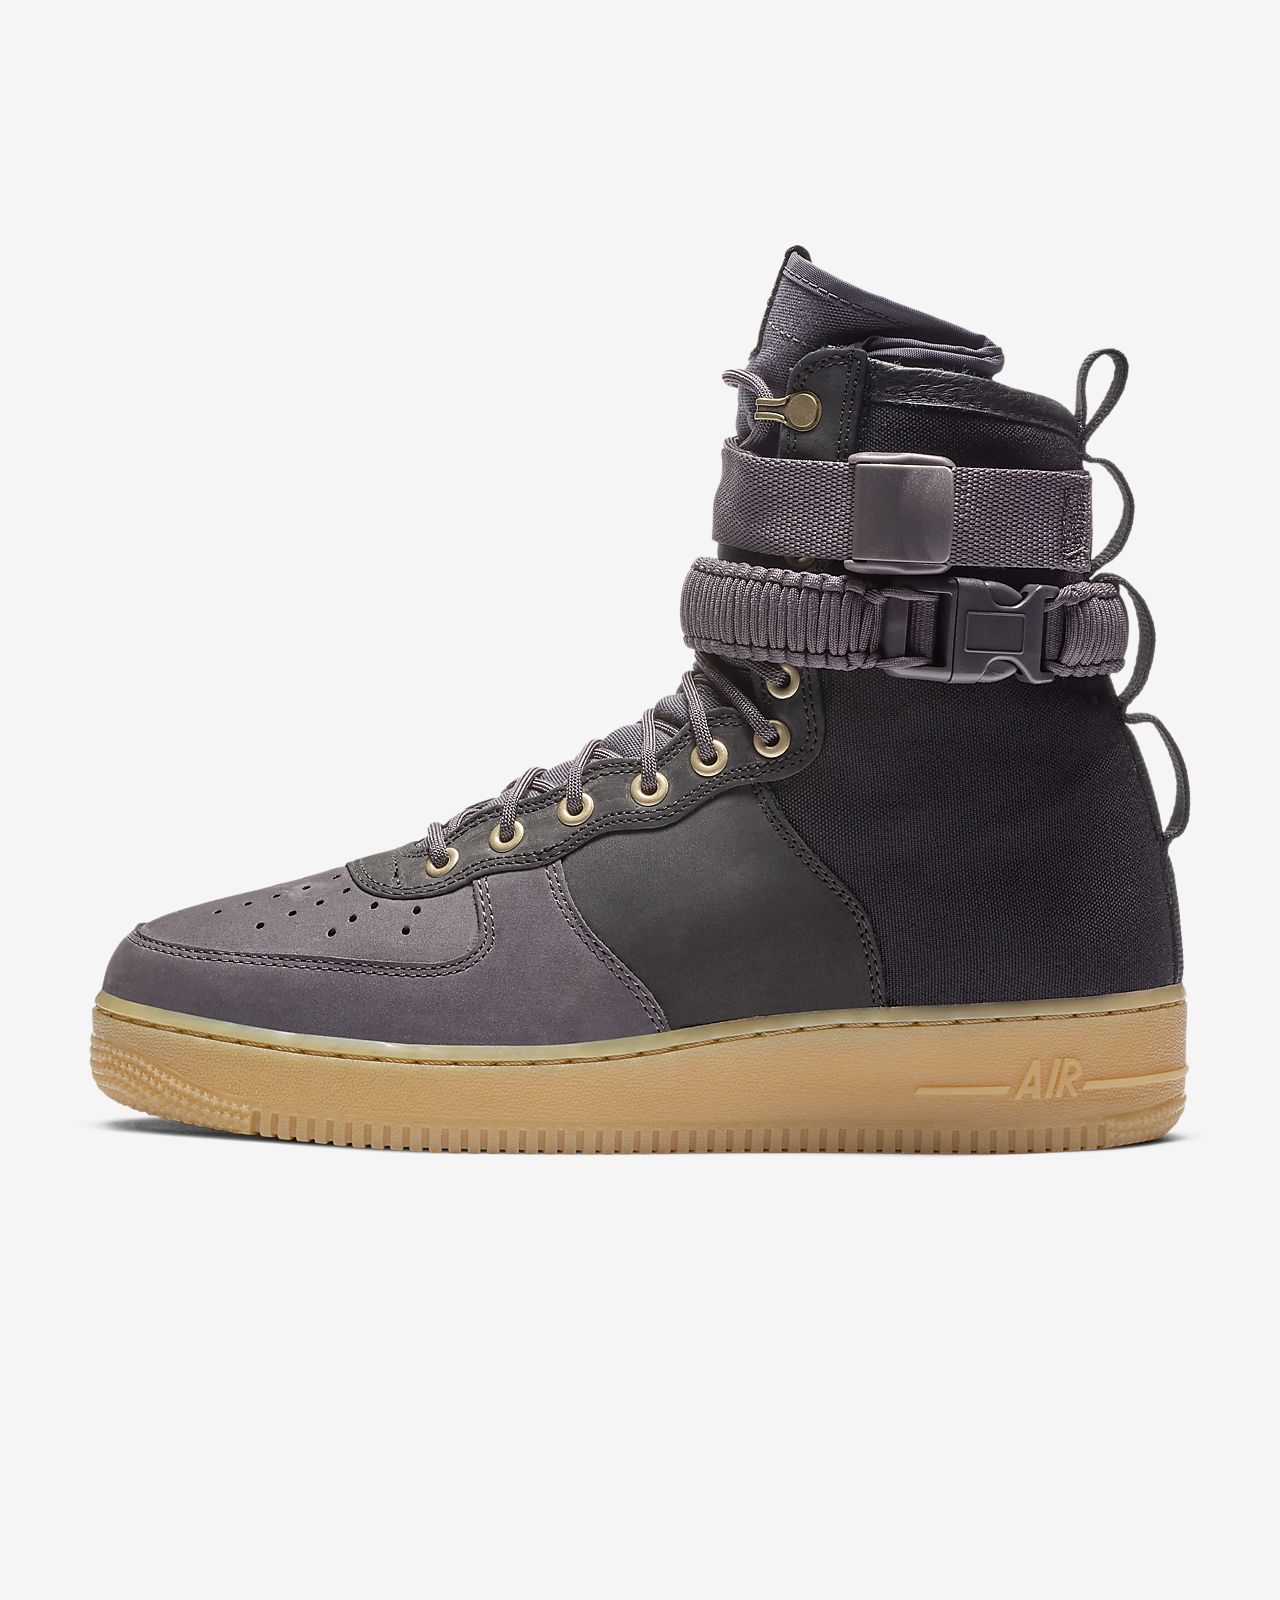 info for a6c16 f2b71 ... Nike SF Air Force 1 Premium Men s Shoe